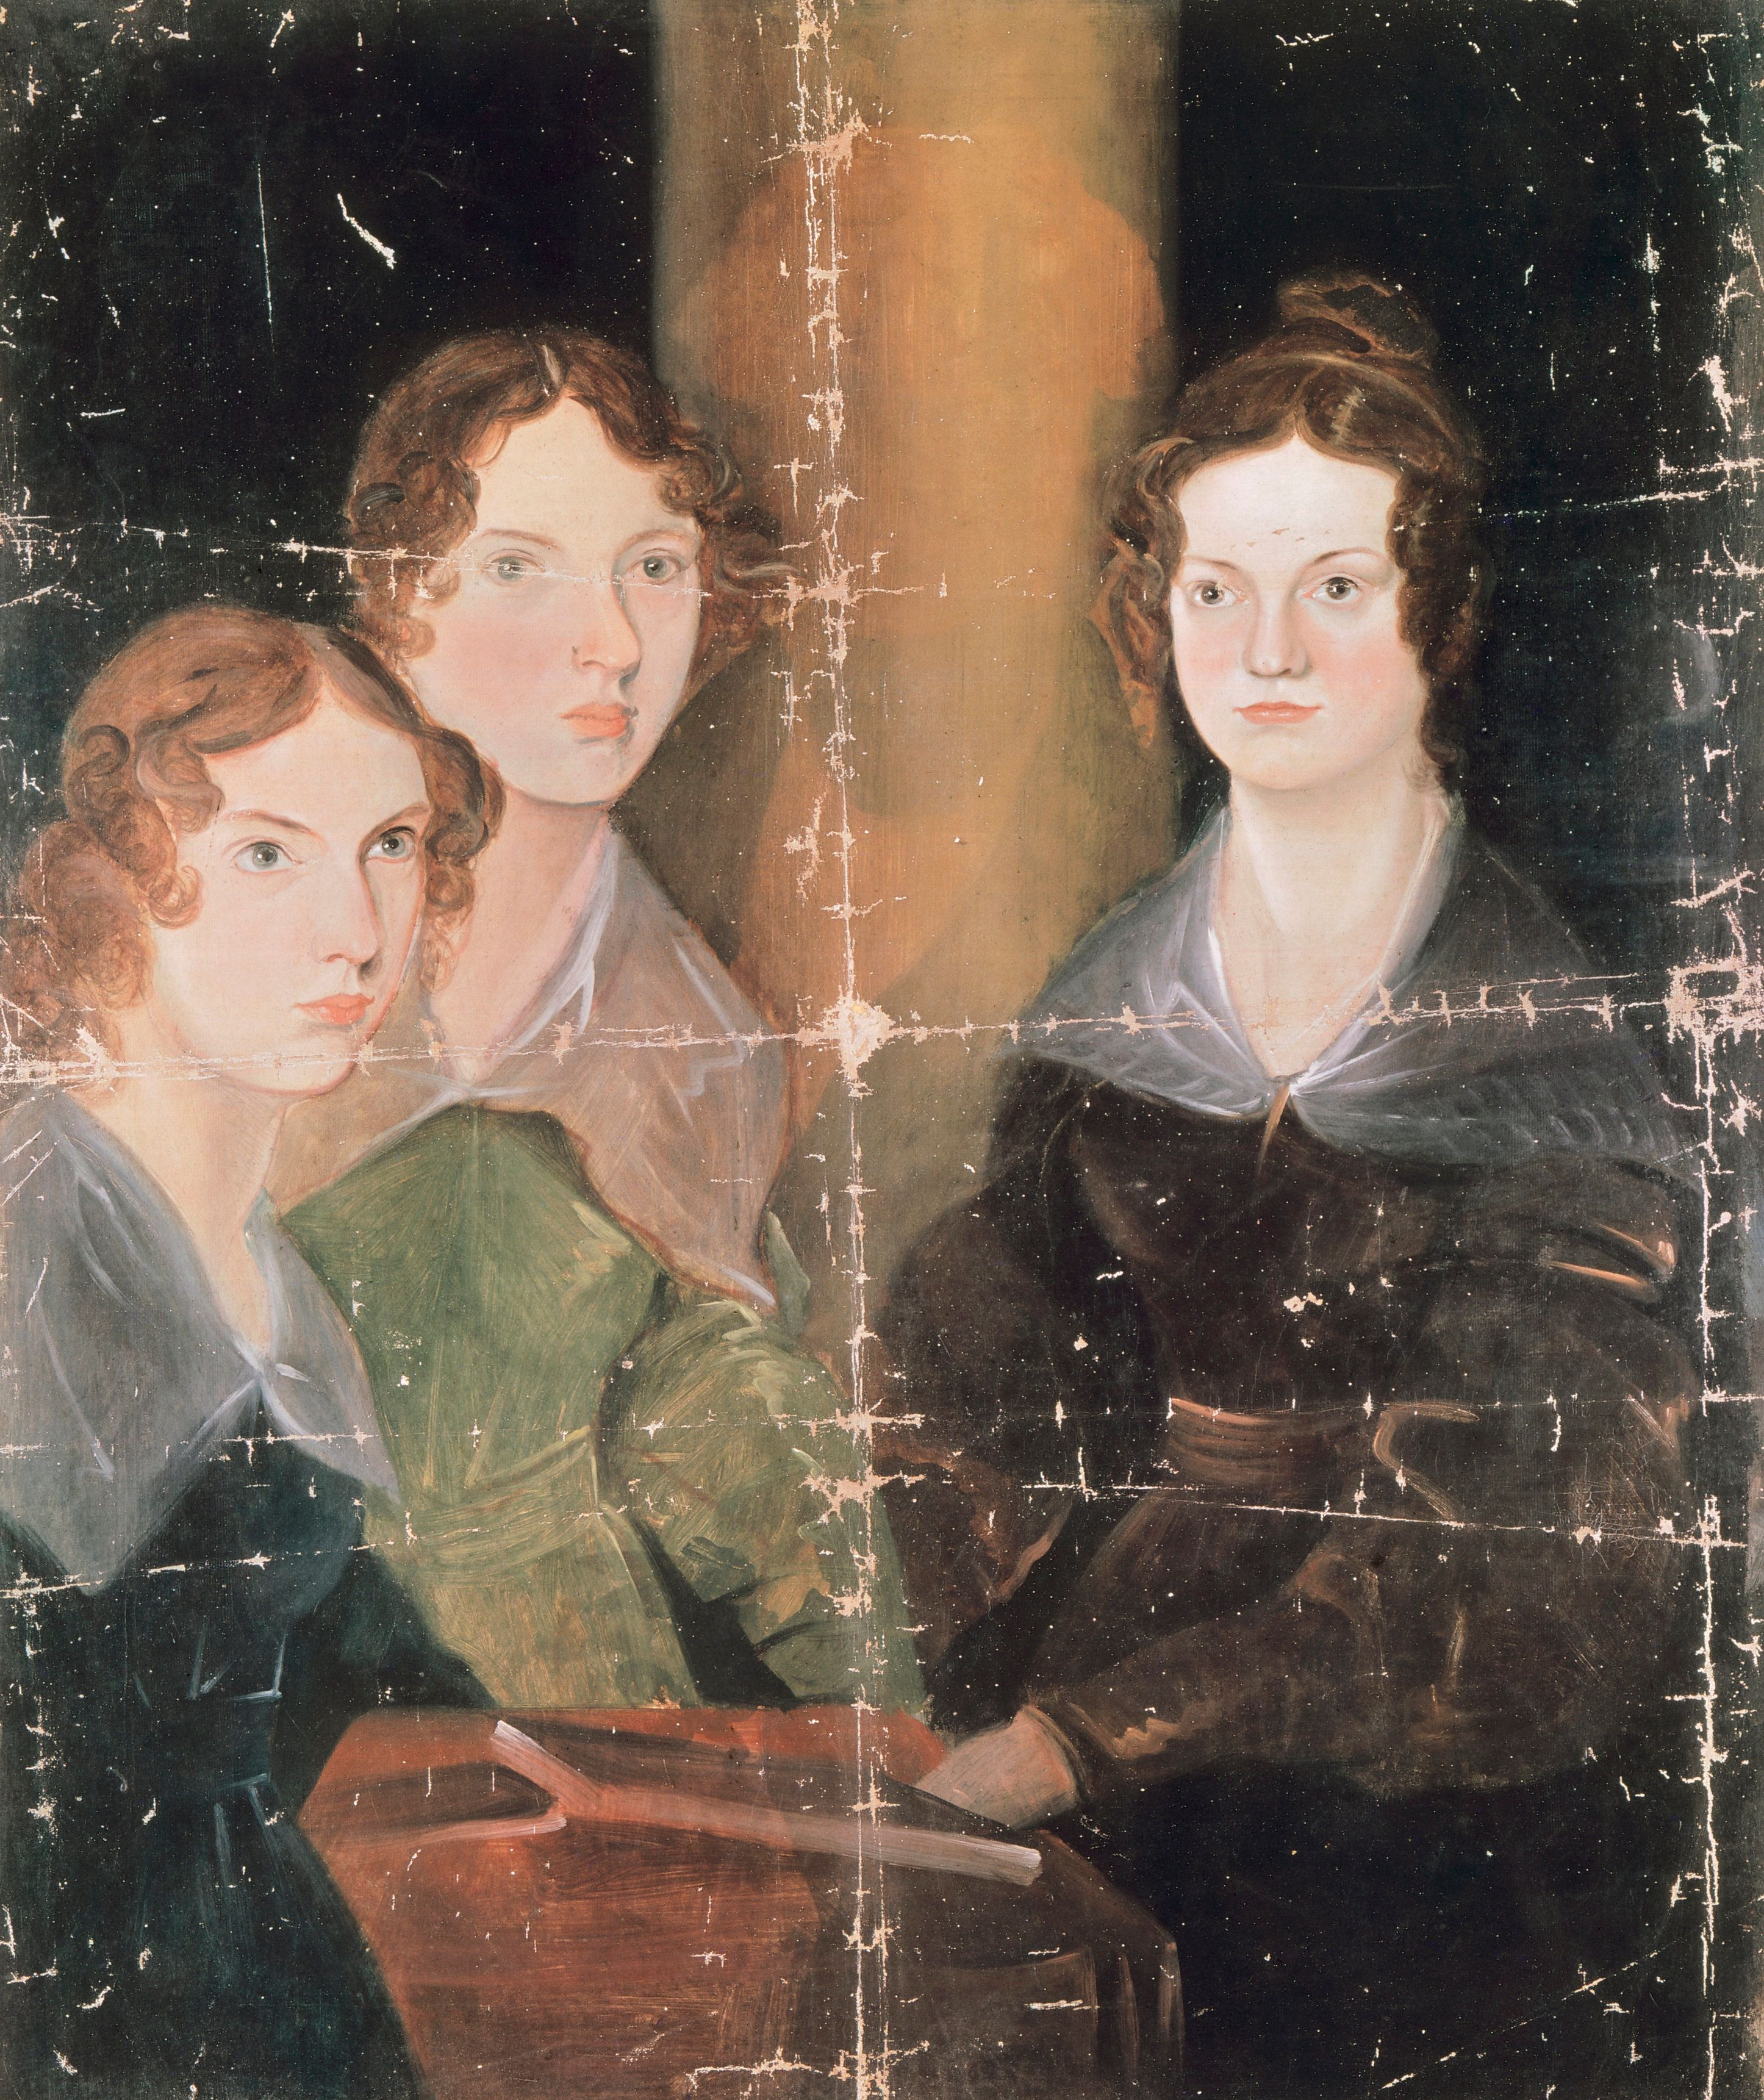 Portrait of Anne Bronte (Thornton, 1820 - Scarborough, 1849), Emily Bronte (Thornton, 1818 - Haworth, 1848) and Charlotte Bronte (Thornton, 1816 - Haworth, 1855), English writers. Oil on canvas by Patrick Branwell Bronte (1817-1848), caa 1834, 90.2 x74.6 cm.